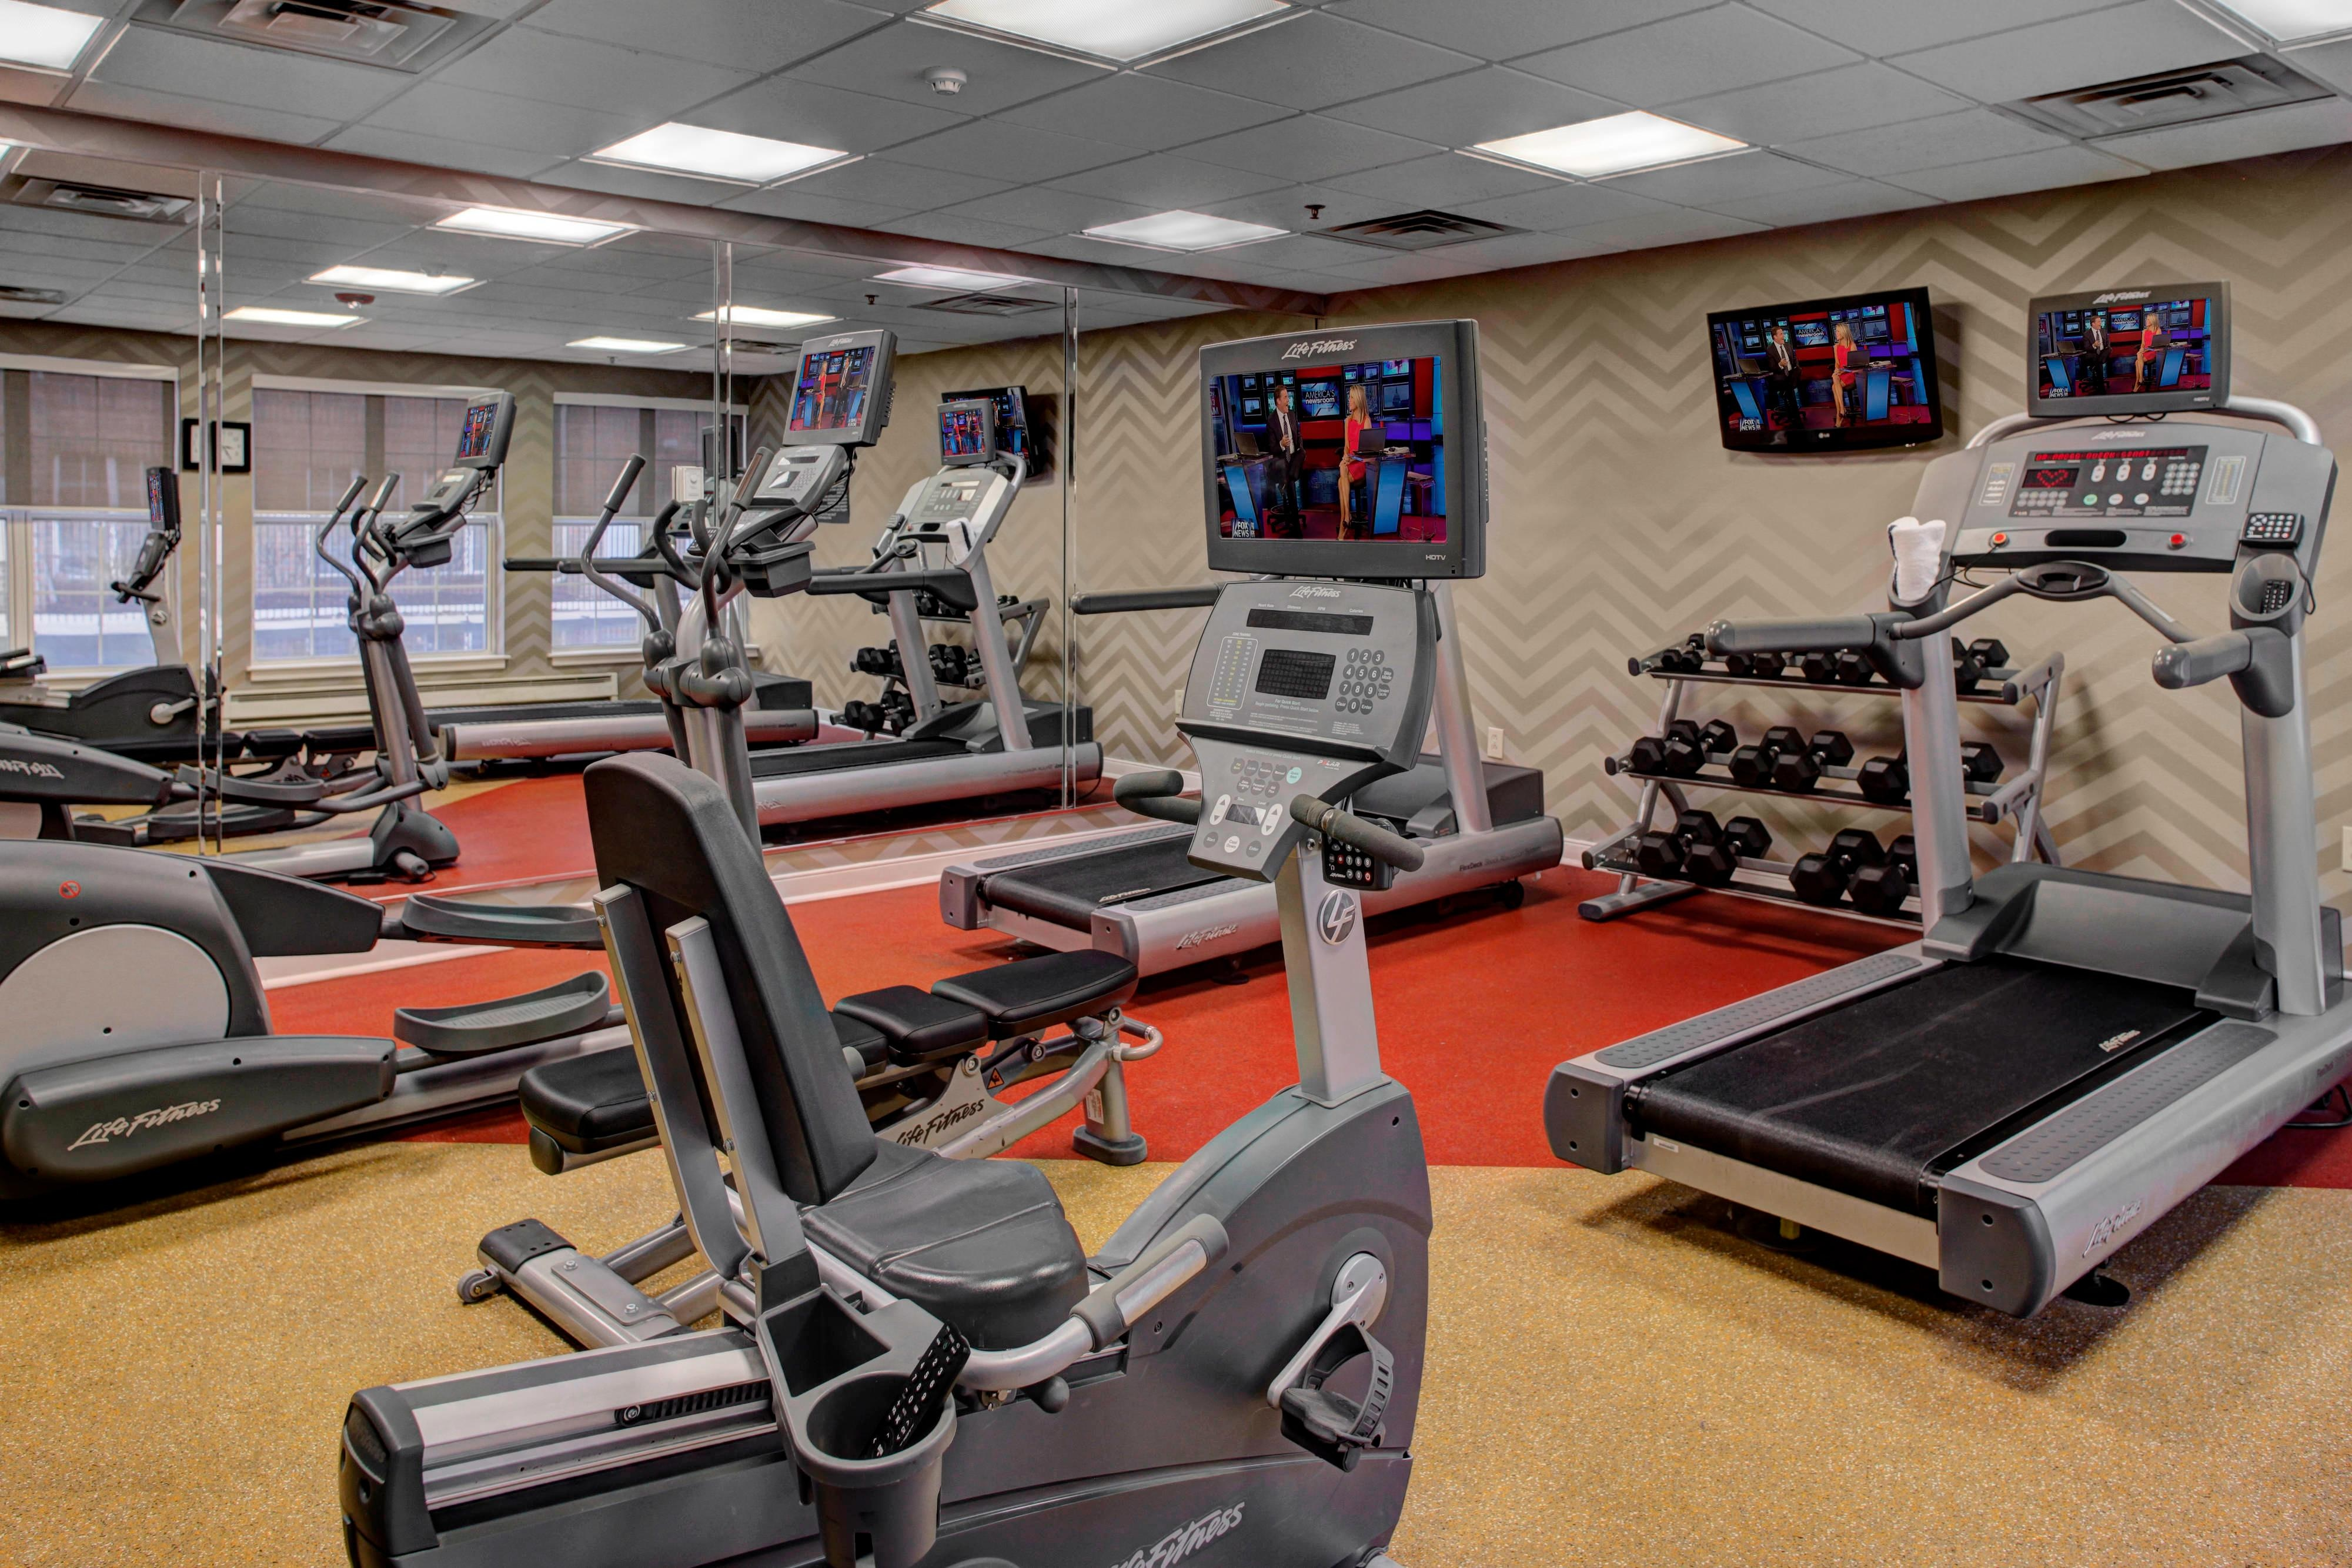 Beachwood hotel Fitness